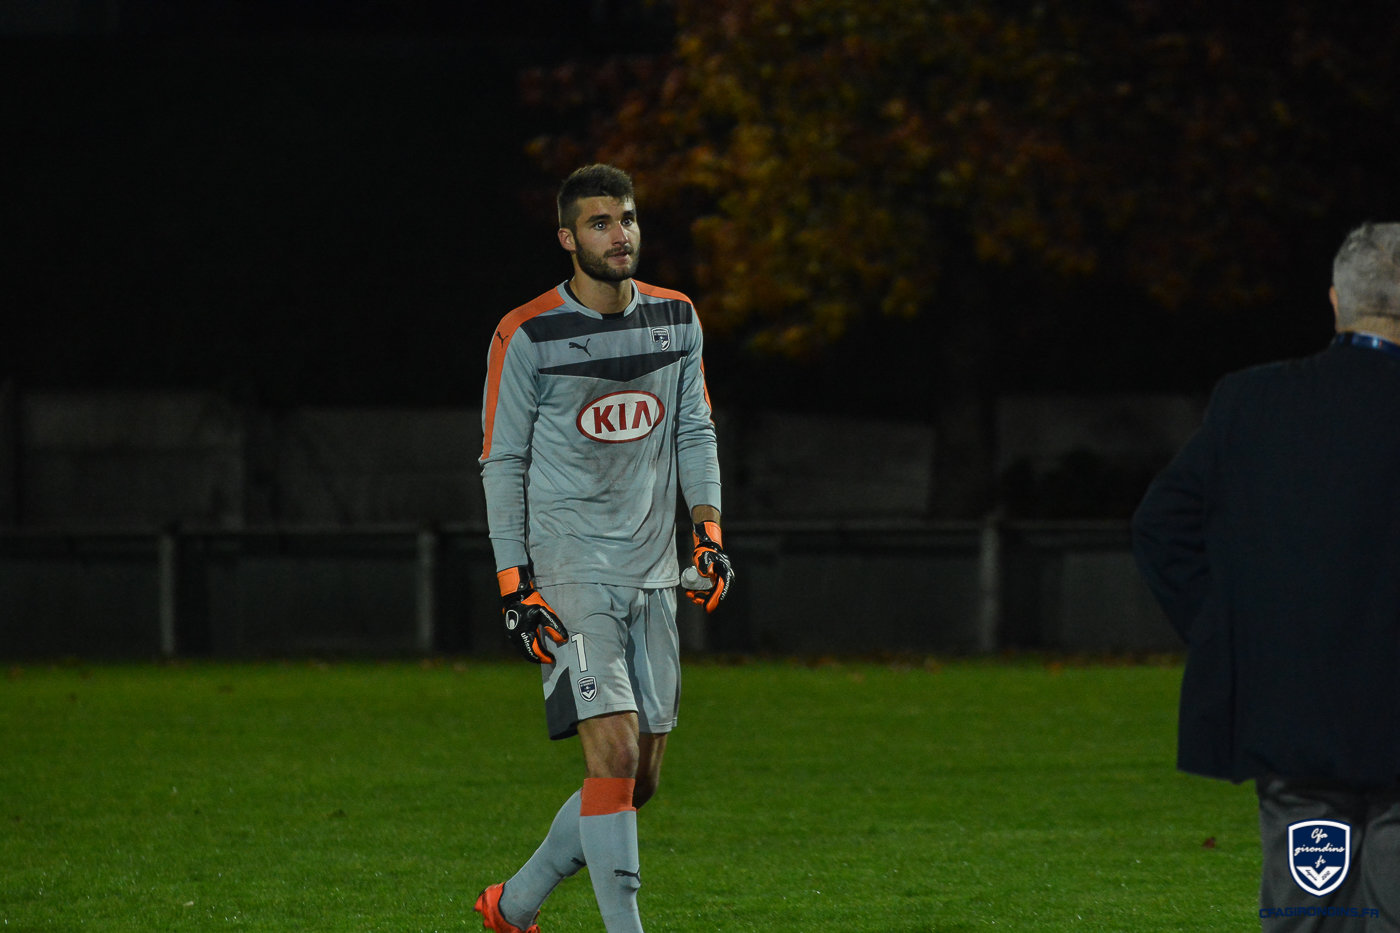 Cfa Girondins : Simon Lefebvre arrête le football, Robin Lebourg ouvre un bar - Formation Girondins